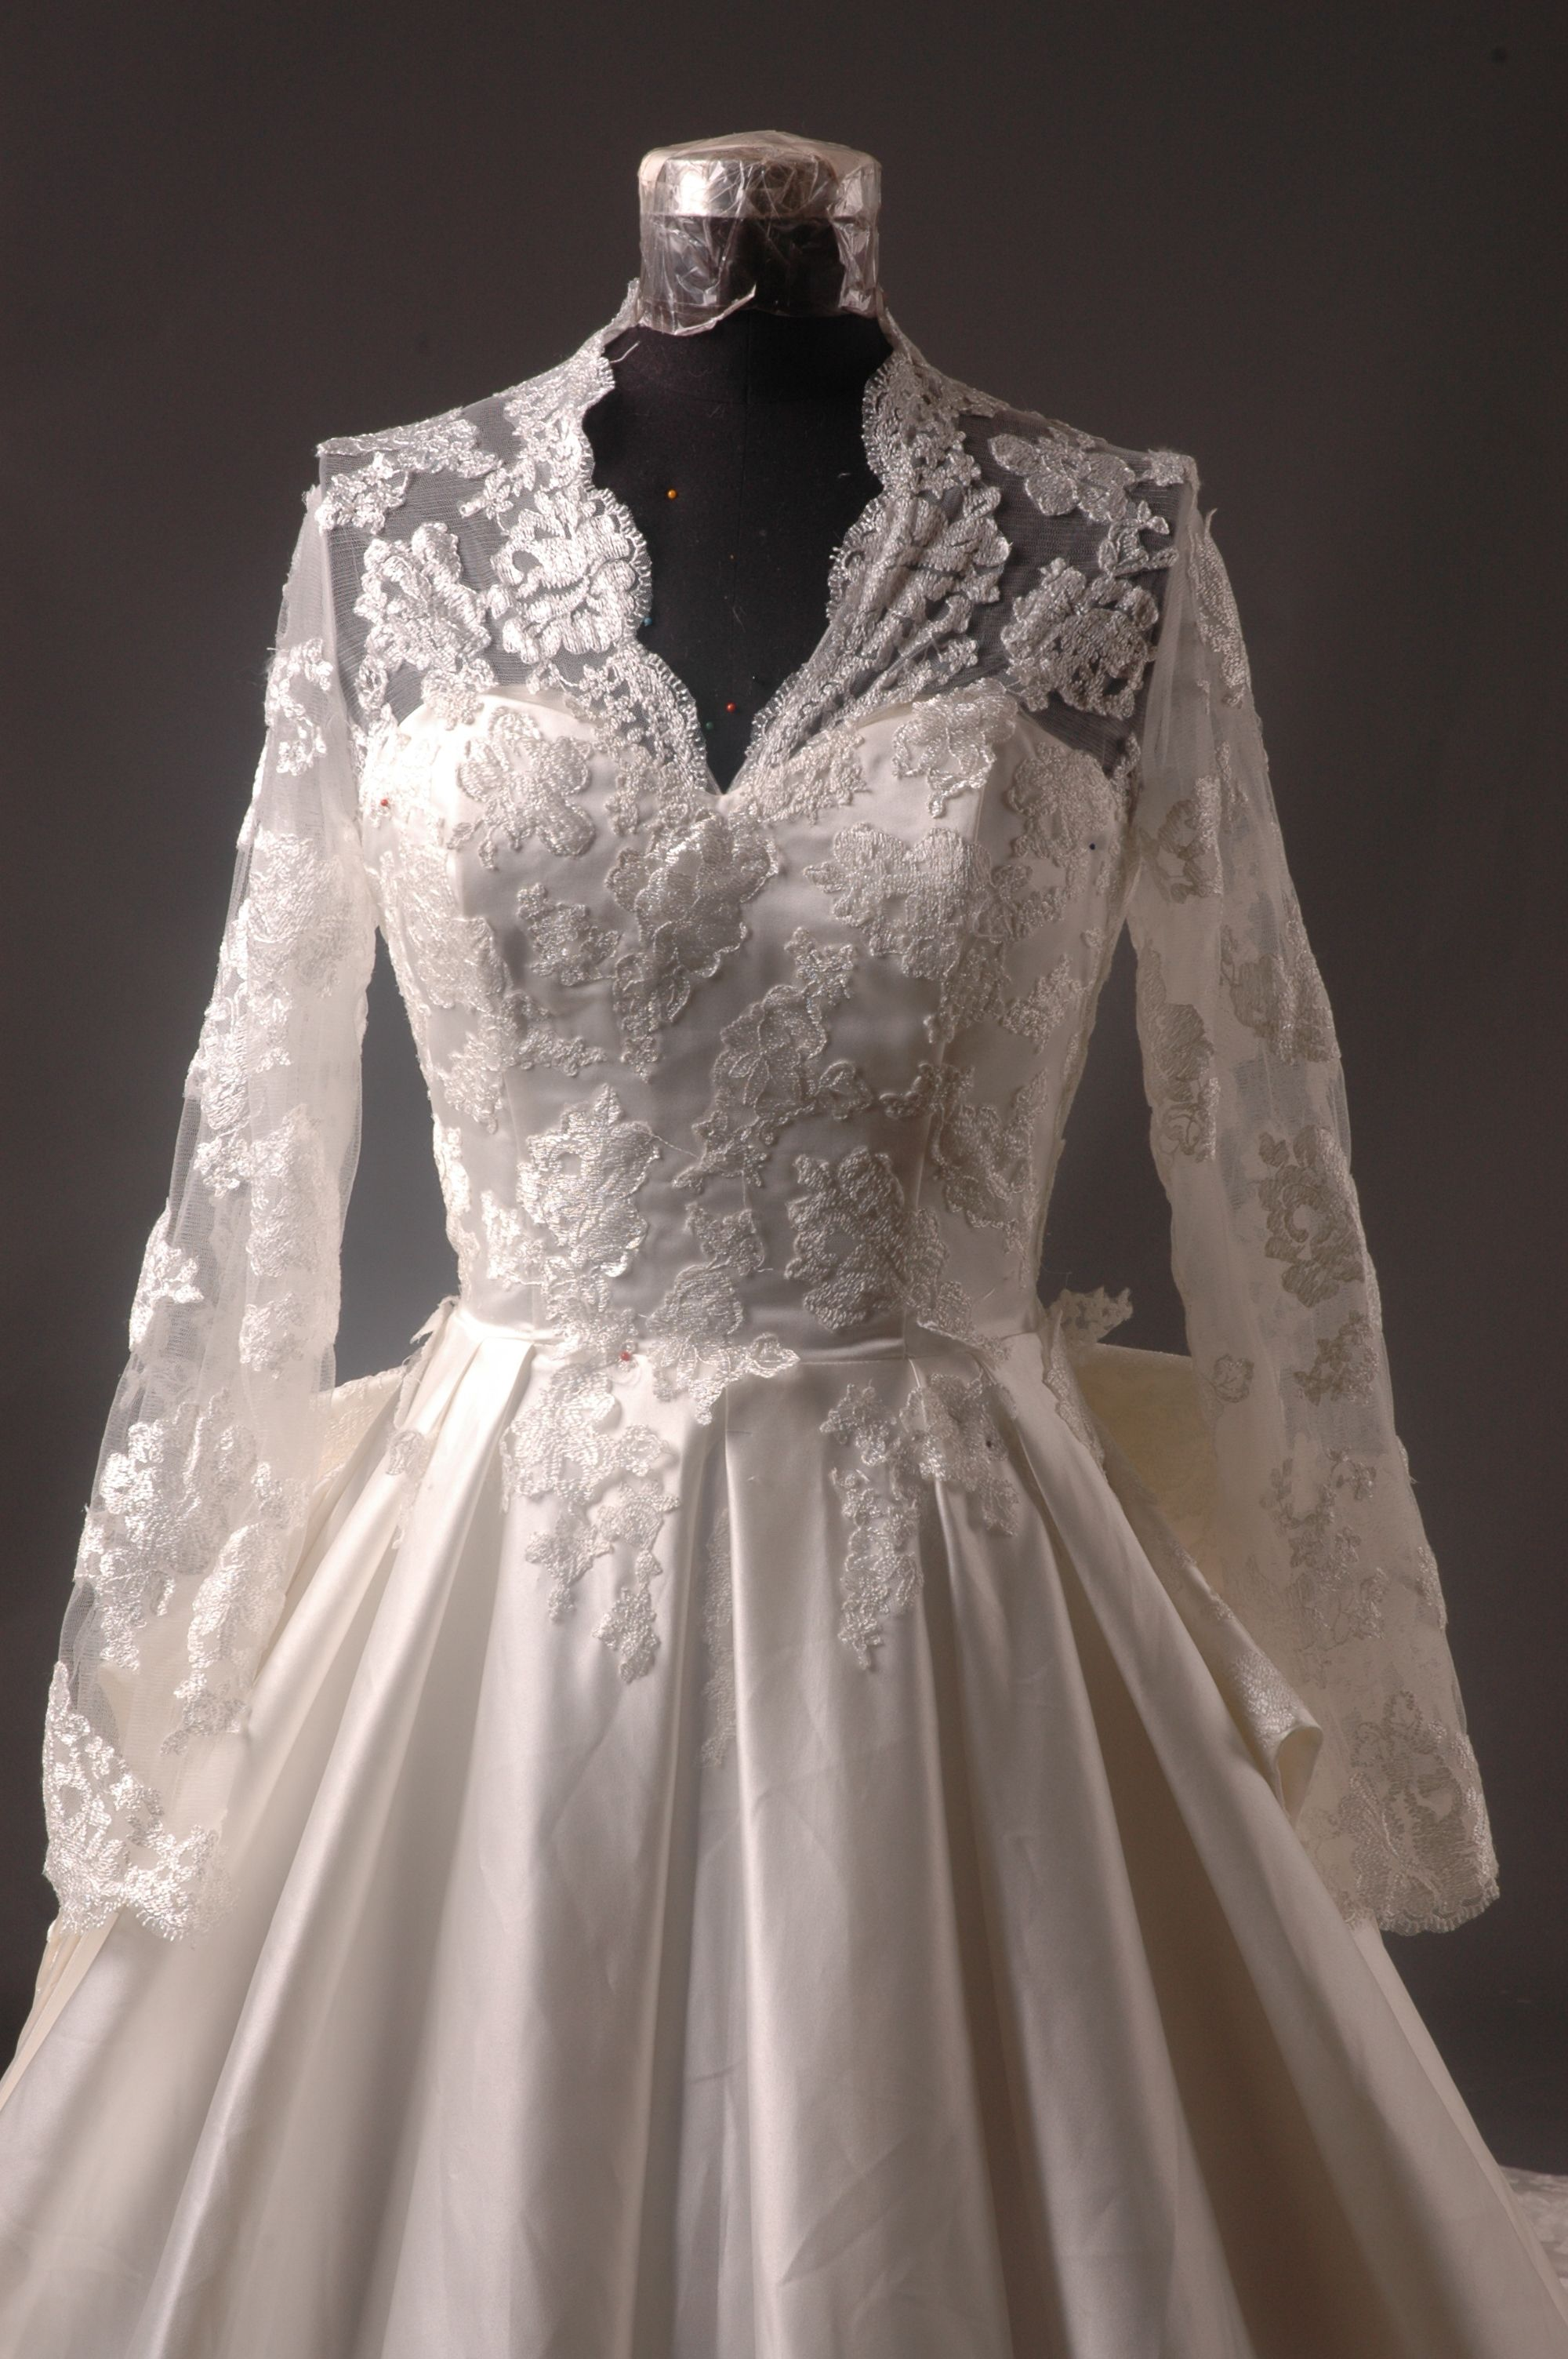 kate middleton wedding dress replica for sale - Google Search ...